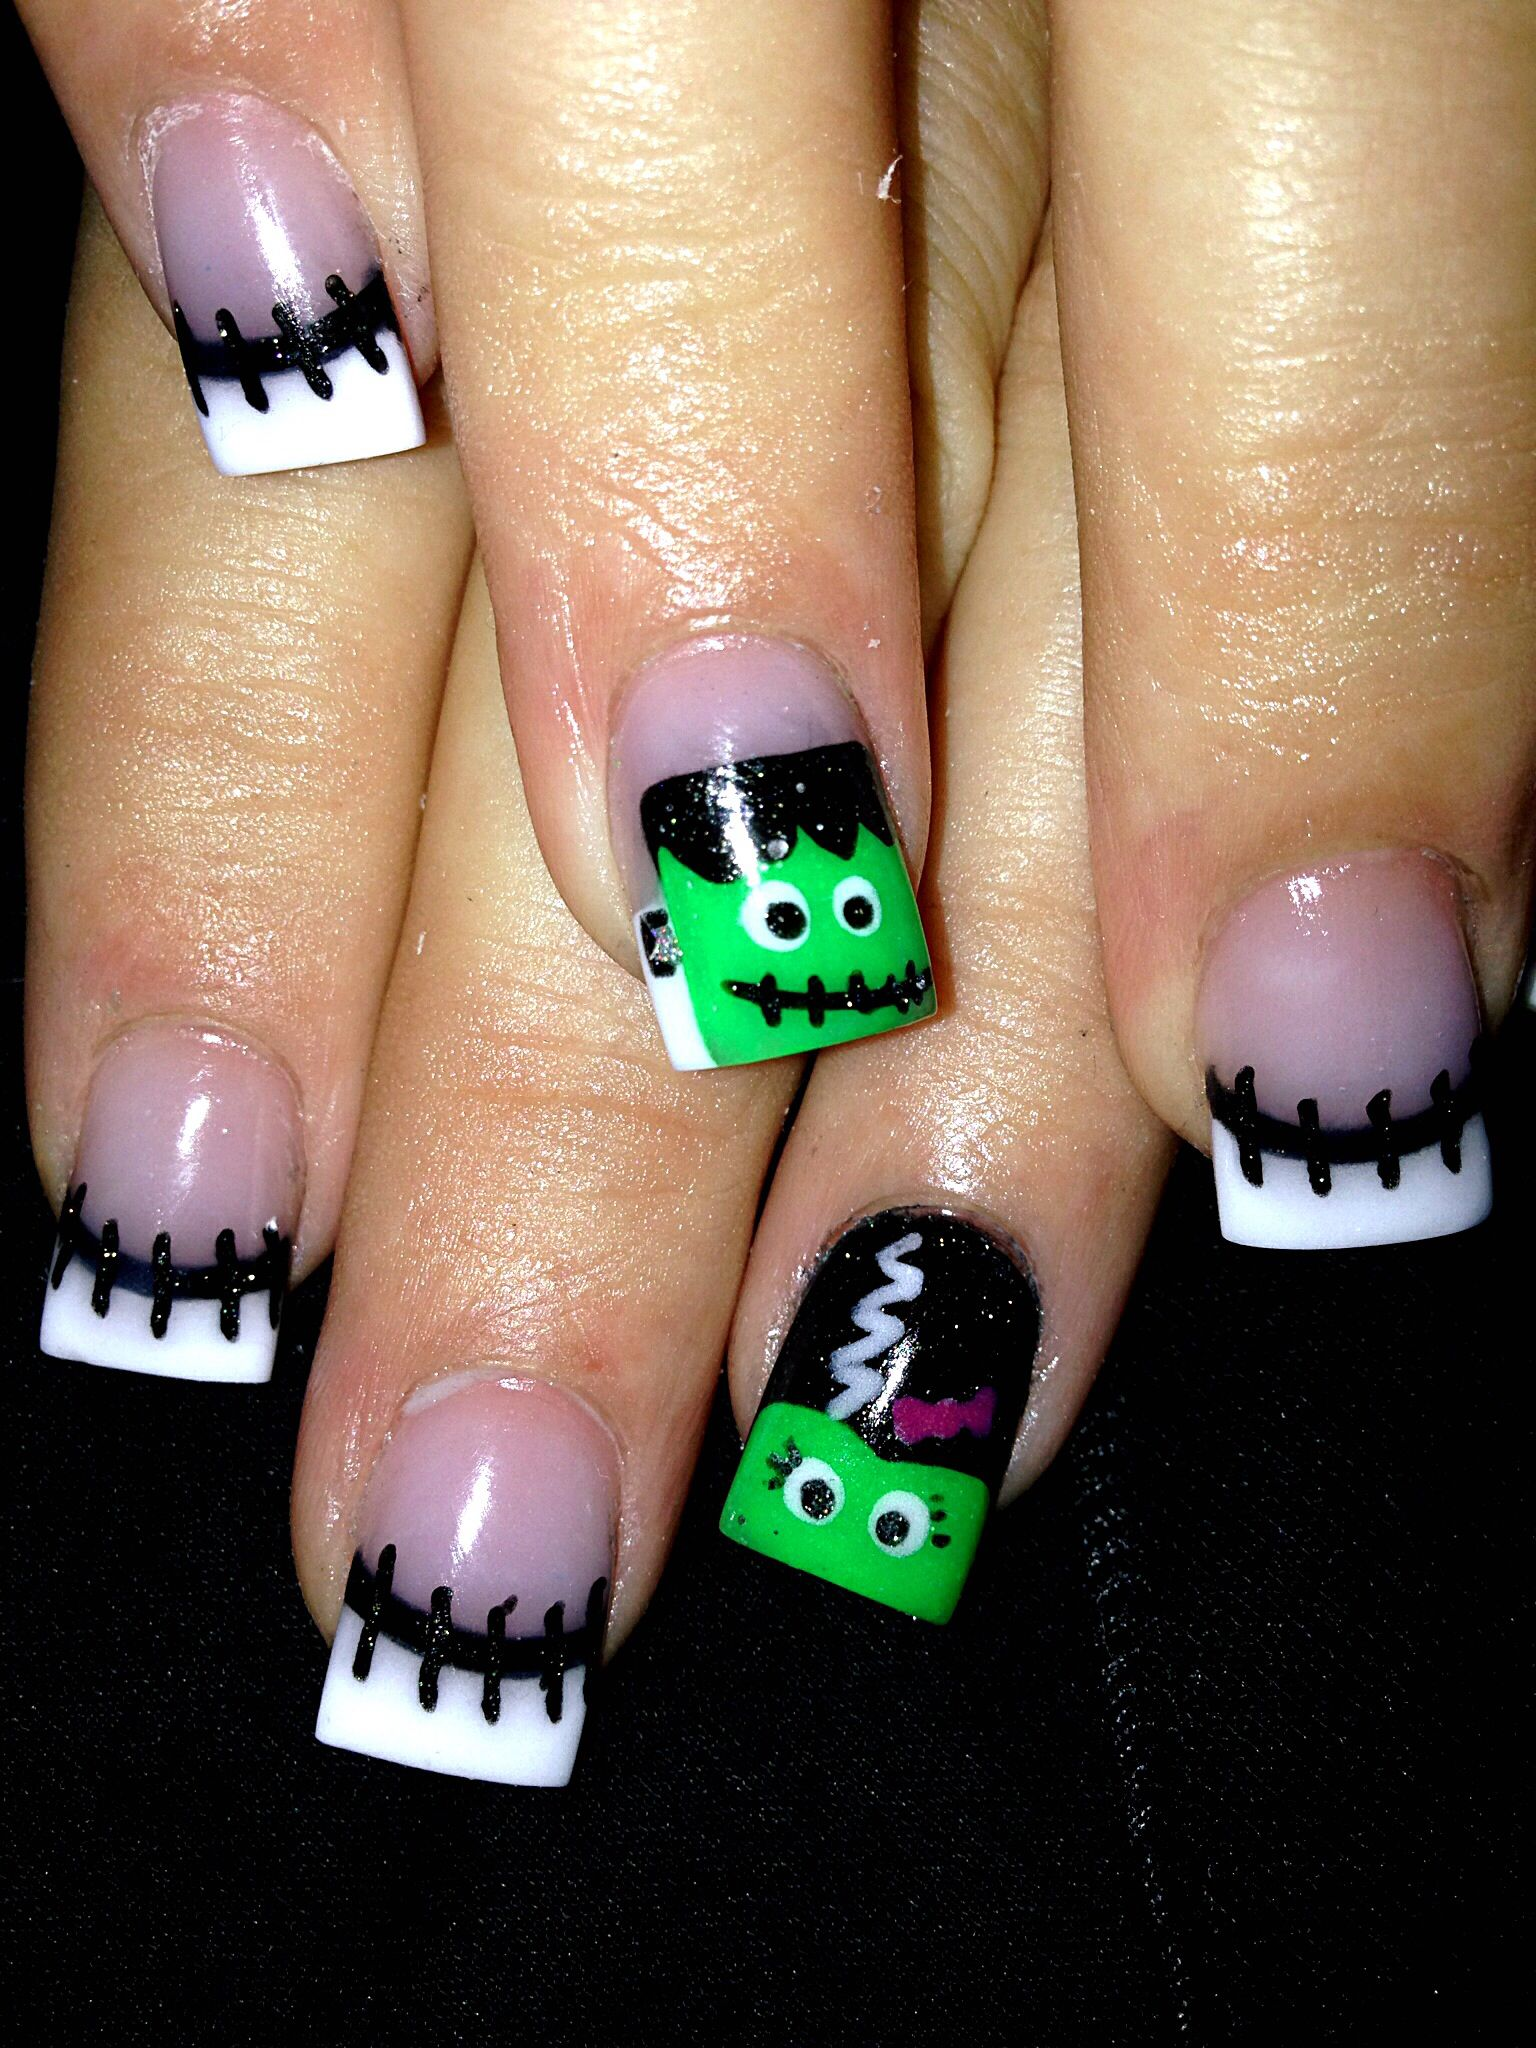 25 Makeup And Nail Looks For Halloween The Weekly Round Up This Silly Girl S Kitchen Halloween Acrylic Nails Halloween Nail Designs Halloween Nails